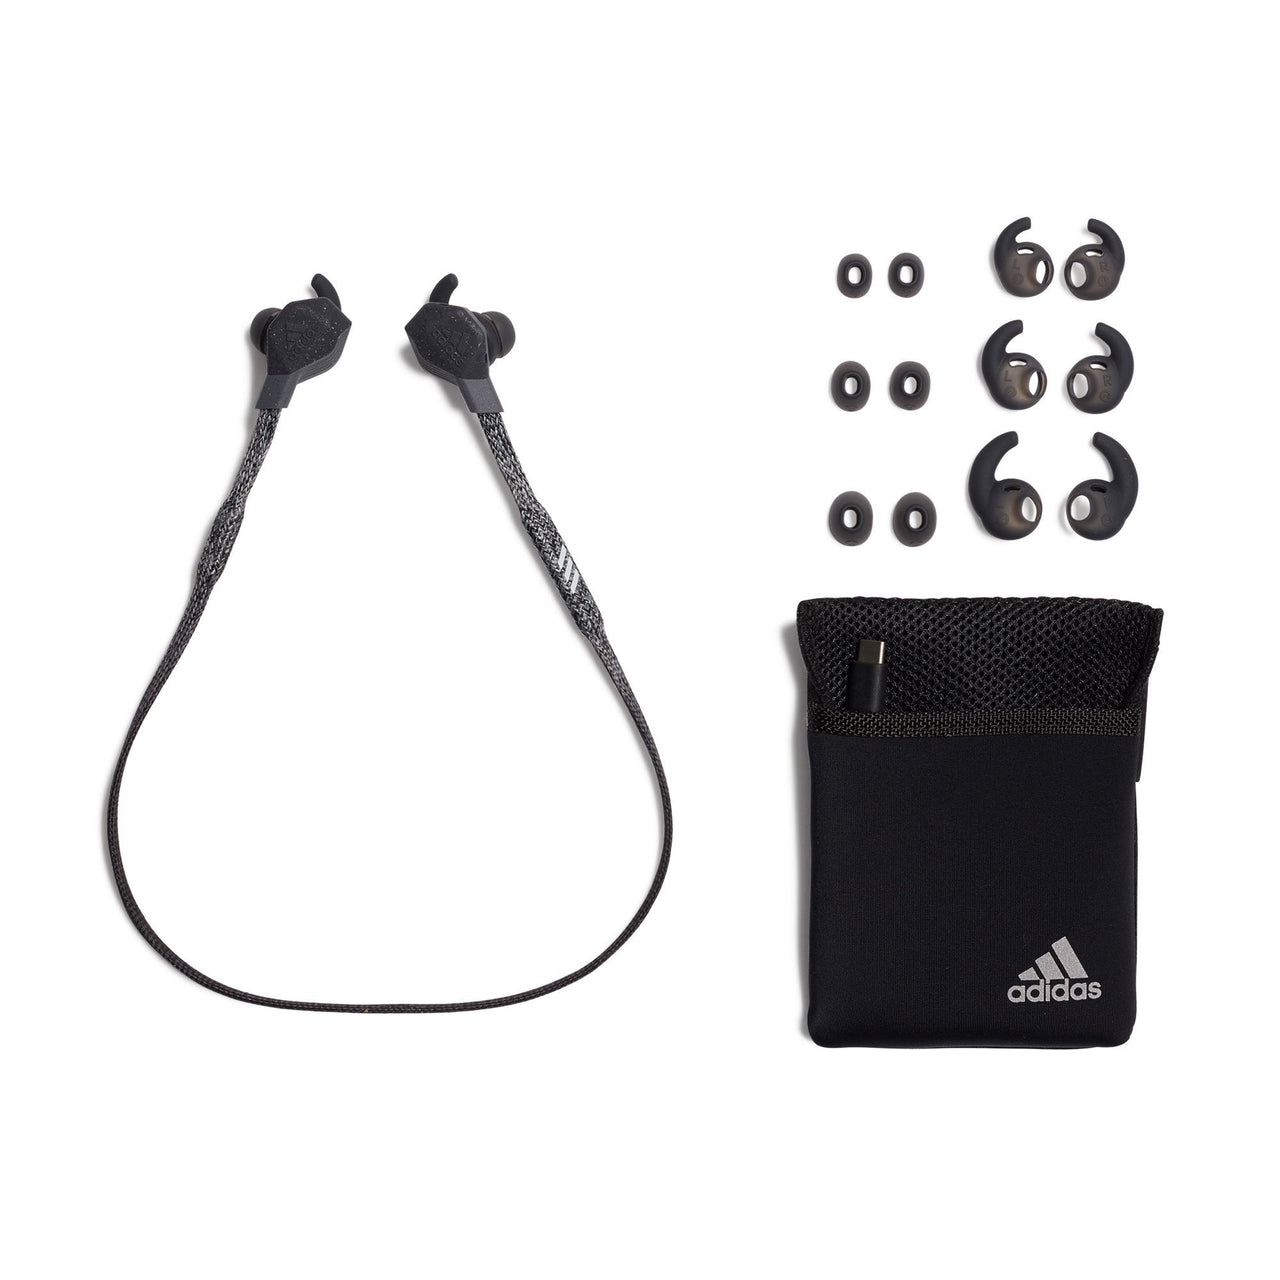 ADIDAS BLUETOOTH IN-EAR HEADPHONE -  FWD-01 NIGHT GREY, Headphones, Adidas, ASH Asia